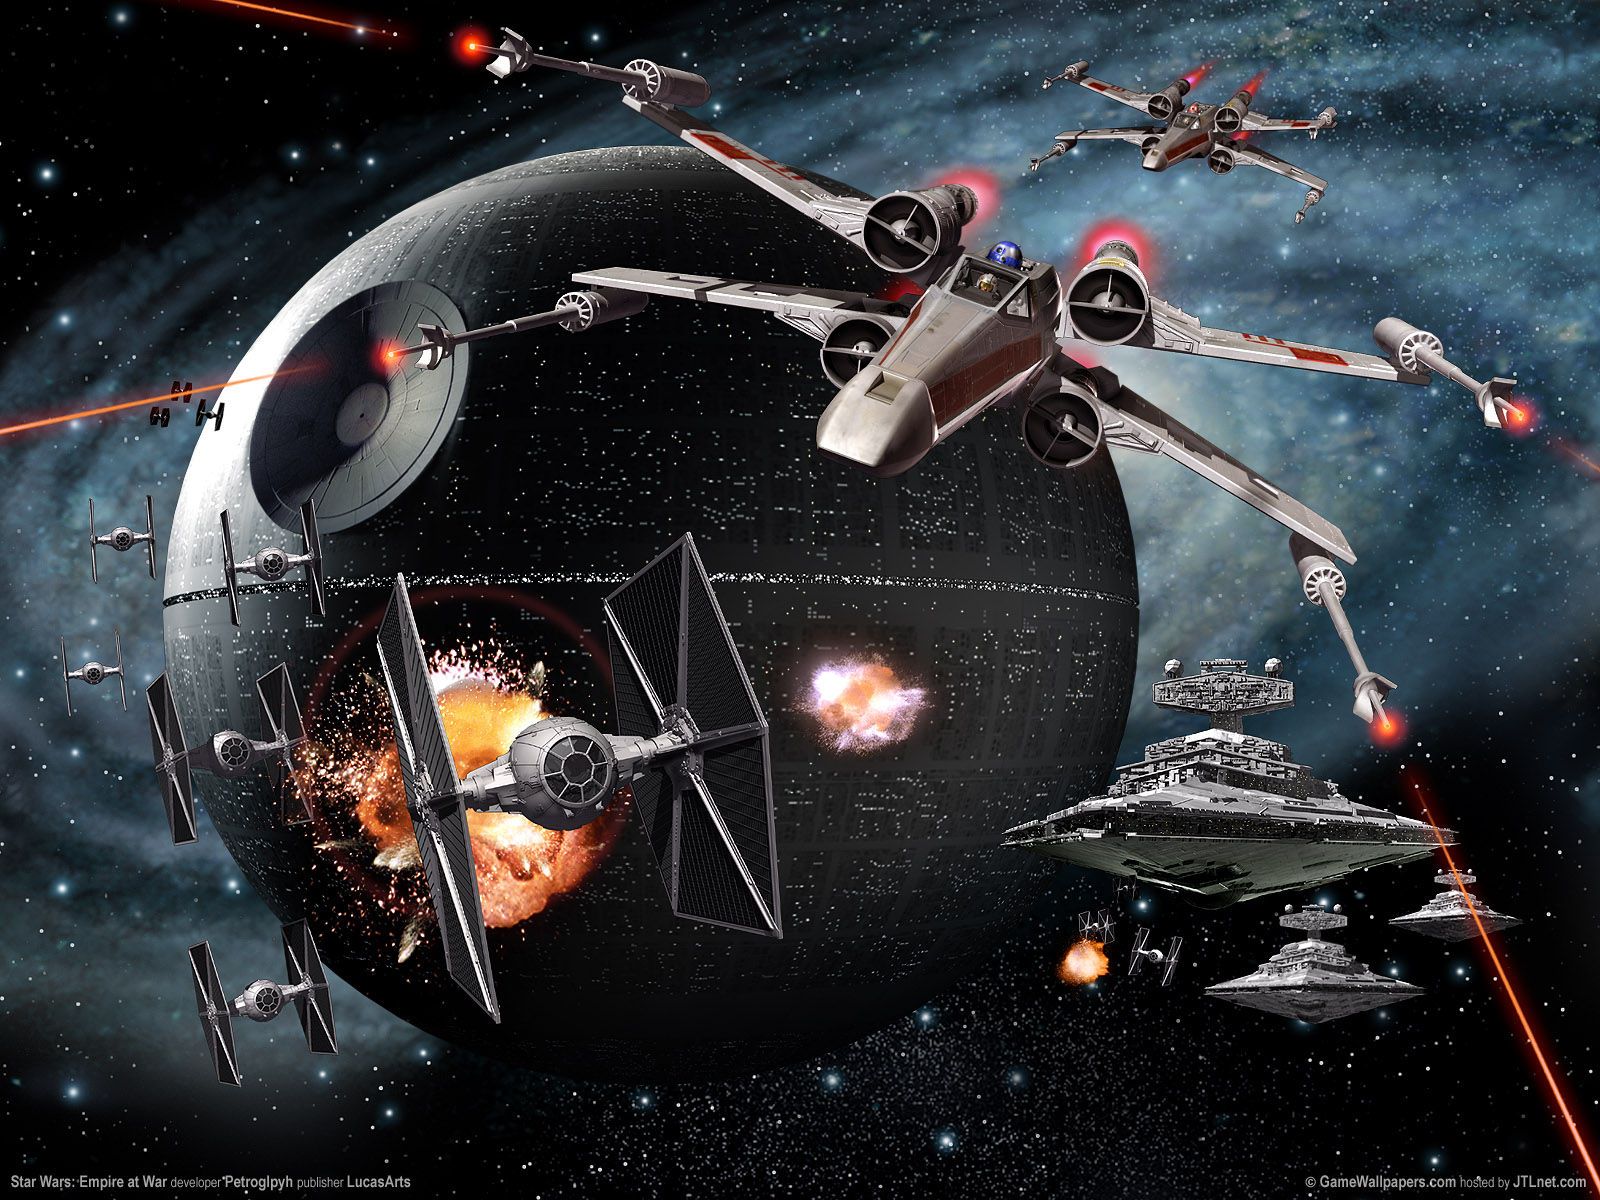 Star Wars - A New Hope Awakens for Disney merchandising (contains spoilers)